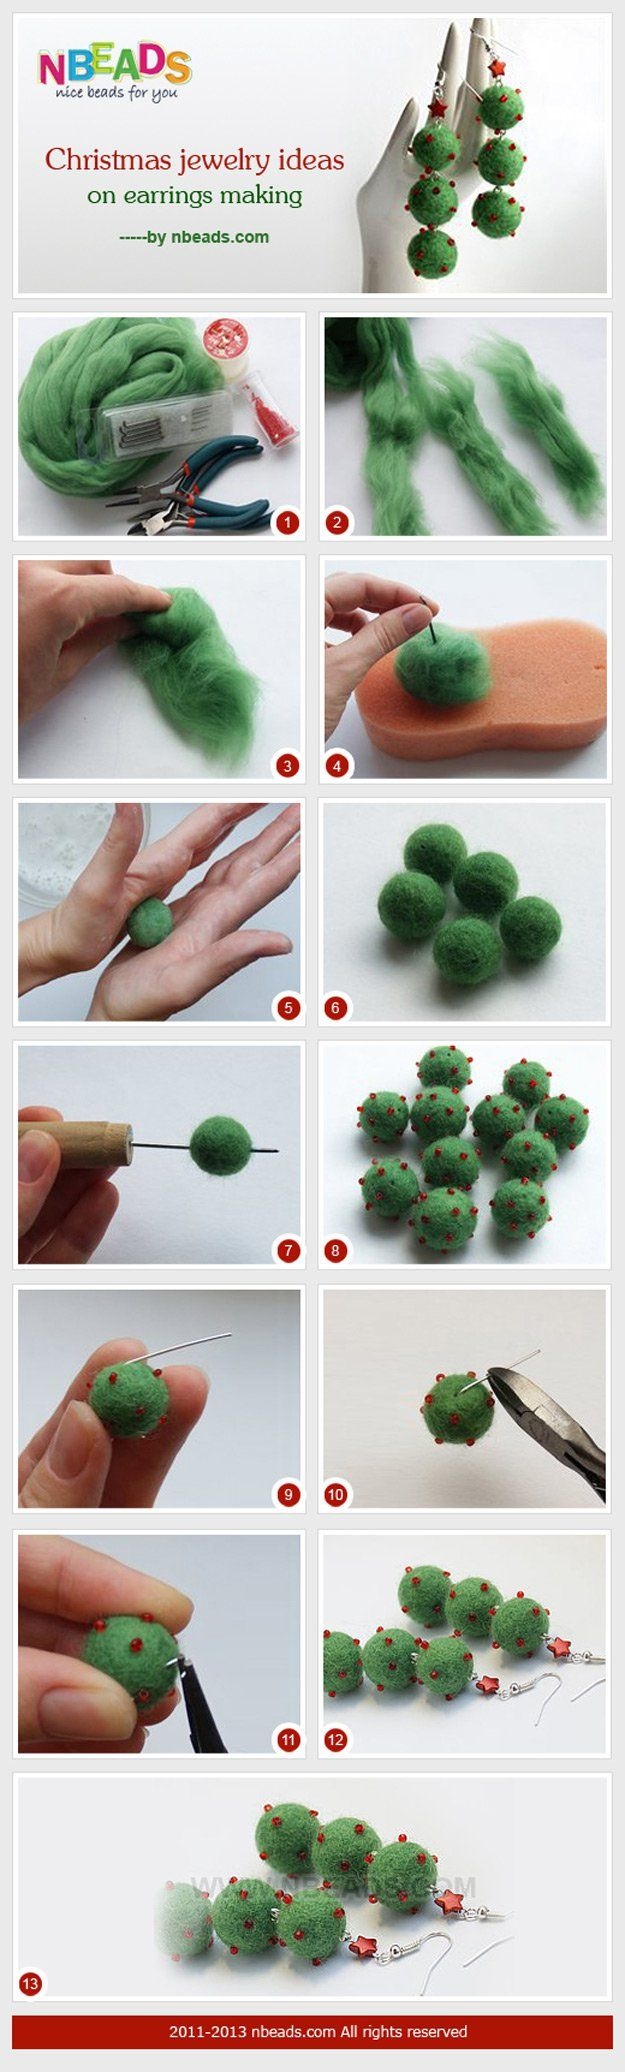 DIY fieltro Ideas joyería de la bola y la Inspiración | http://artesaniasdebricolaje.ru/diy-projects-with-felt-balls/